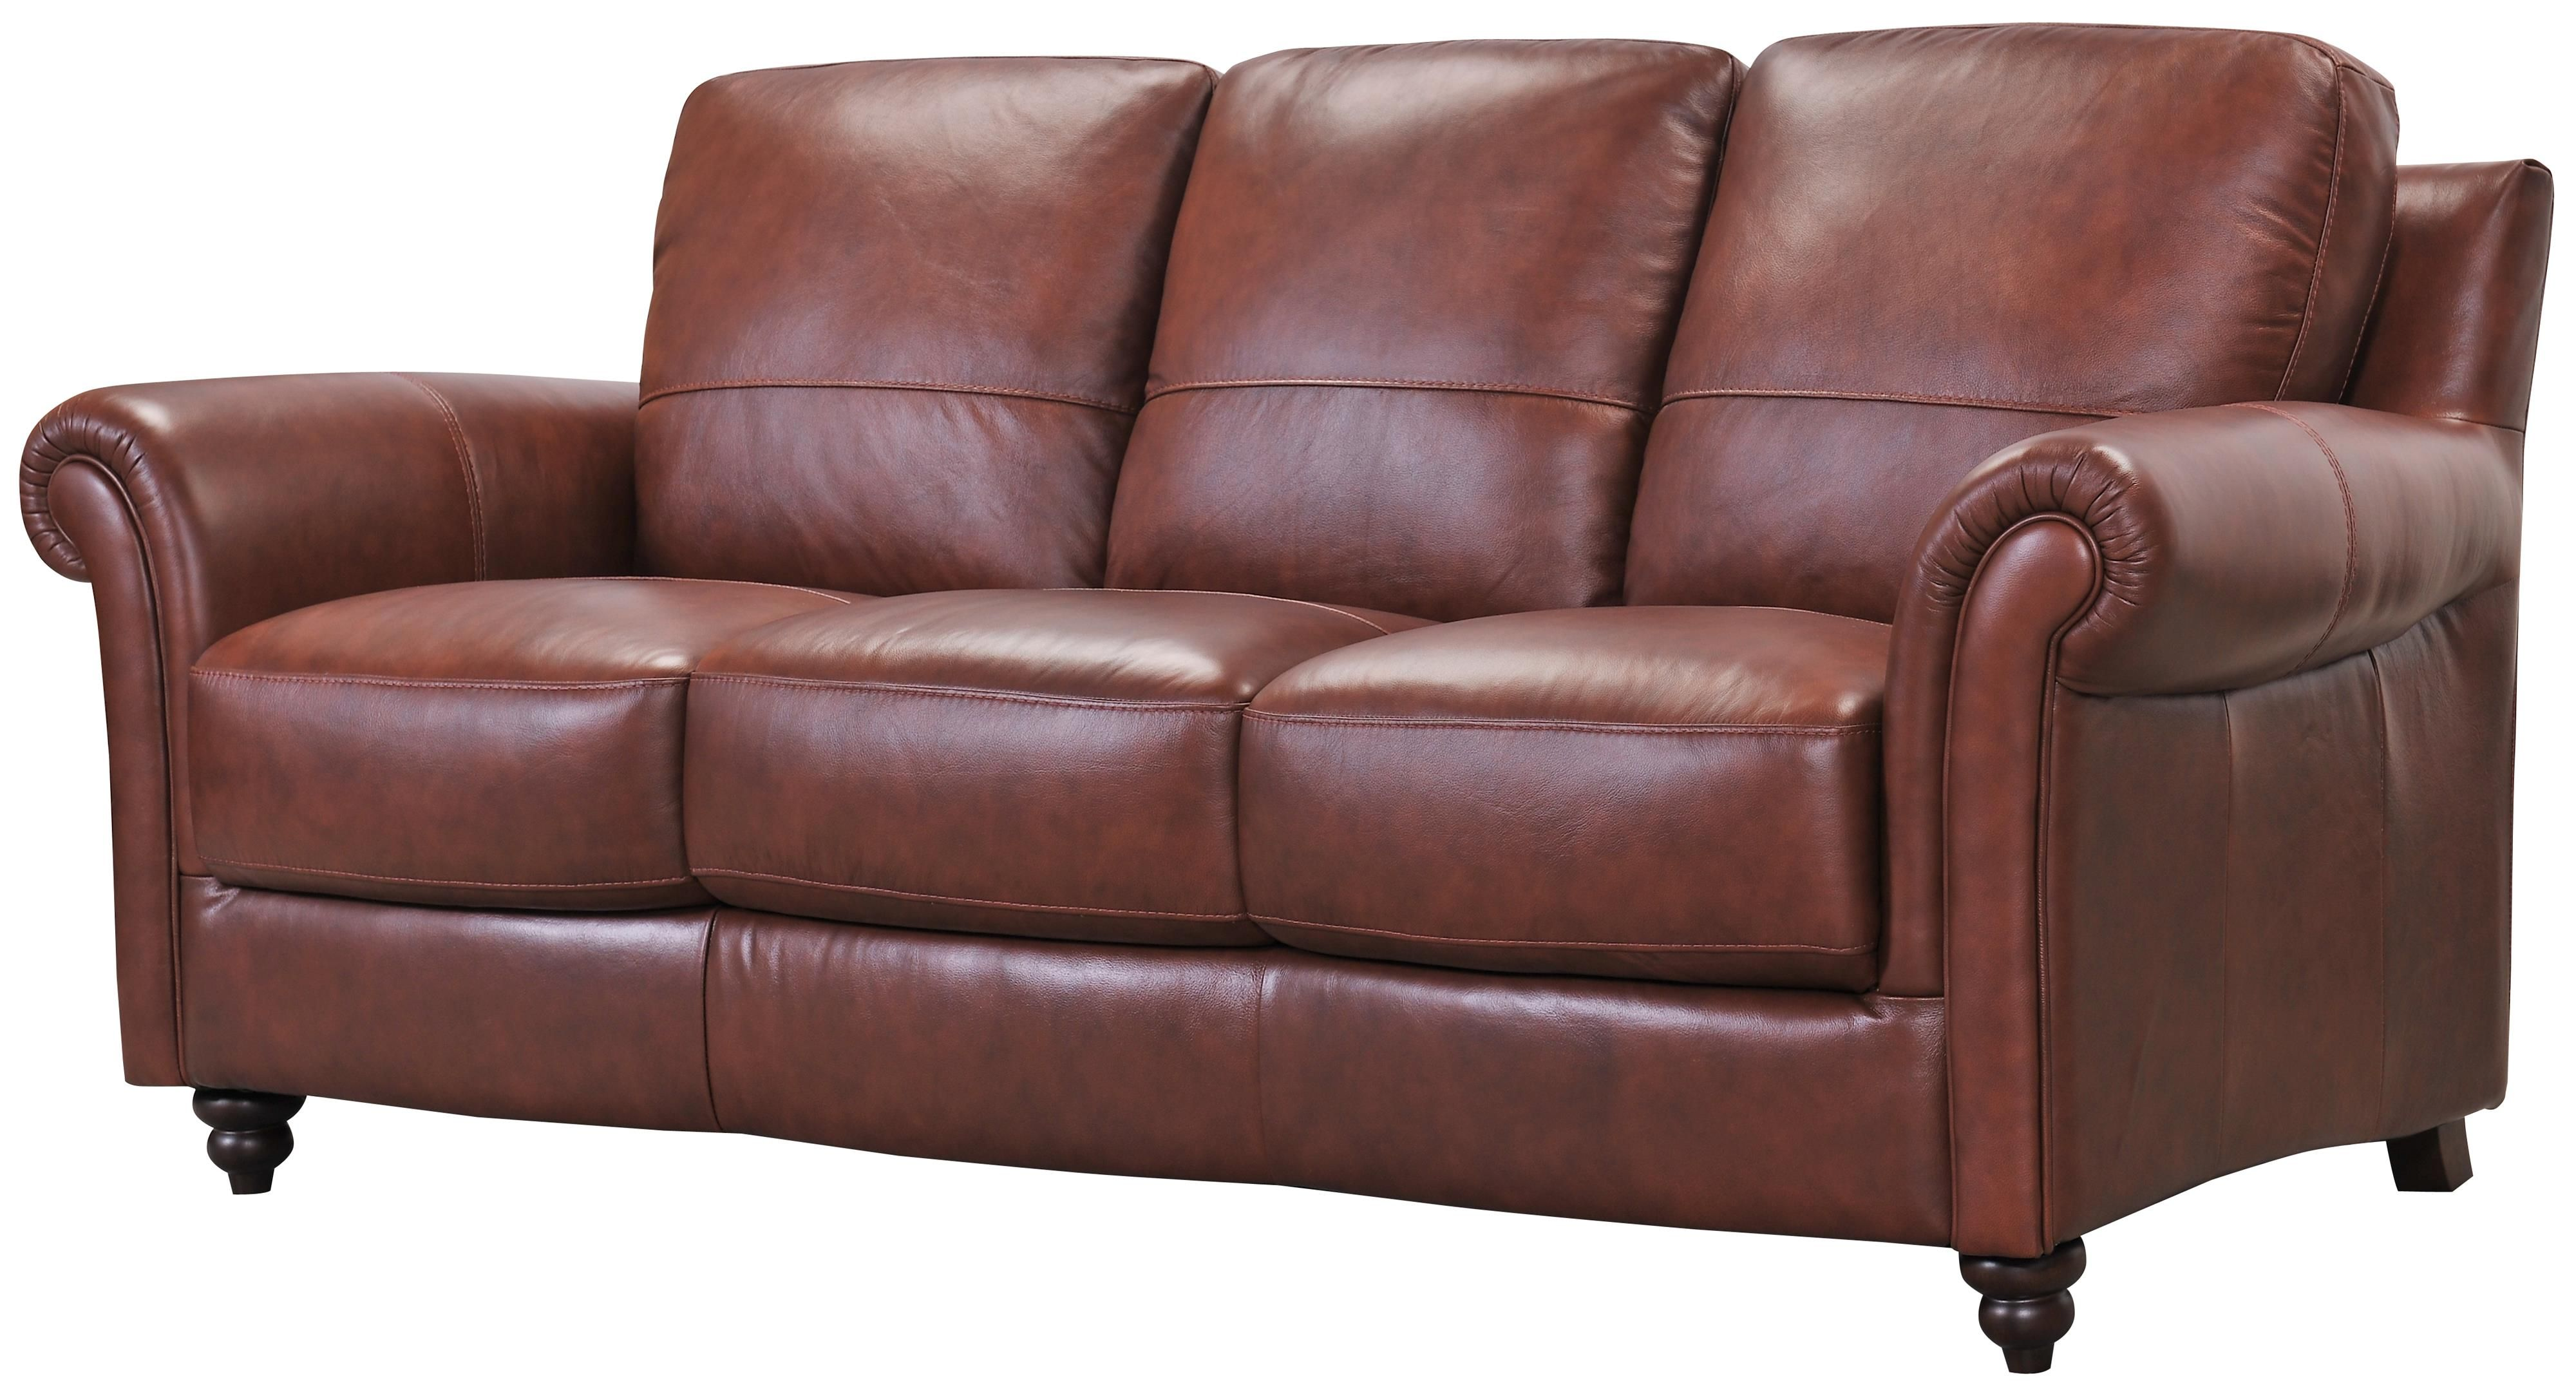 Outstanding Grady Leather Sofa With Rolled Arms And Turned Wood Feet By Machost Co Dining Chair Design Ideas Machostcouk